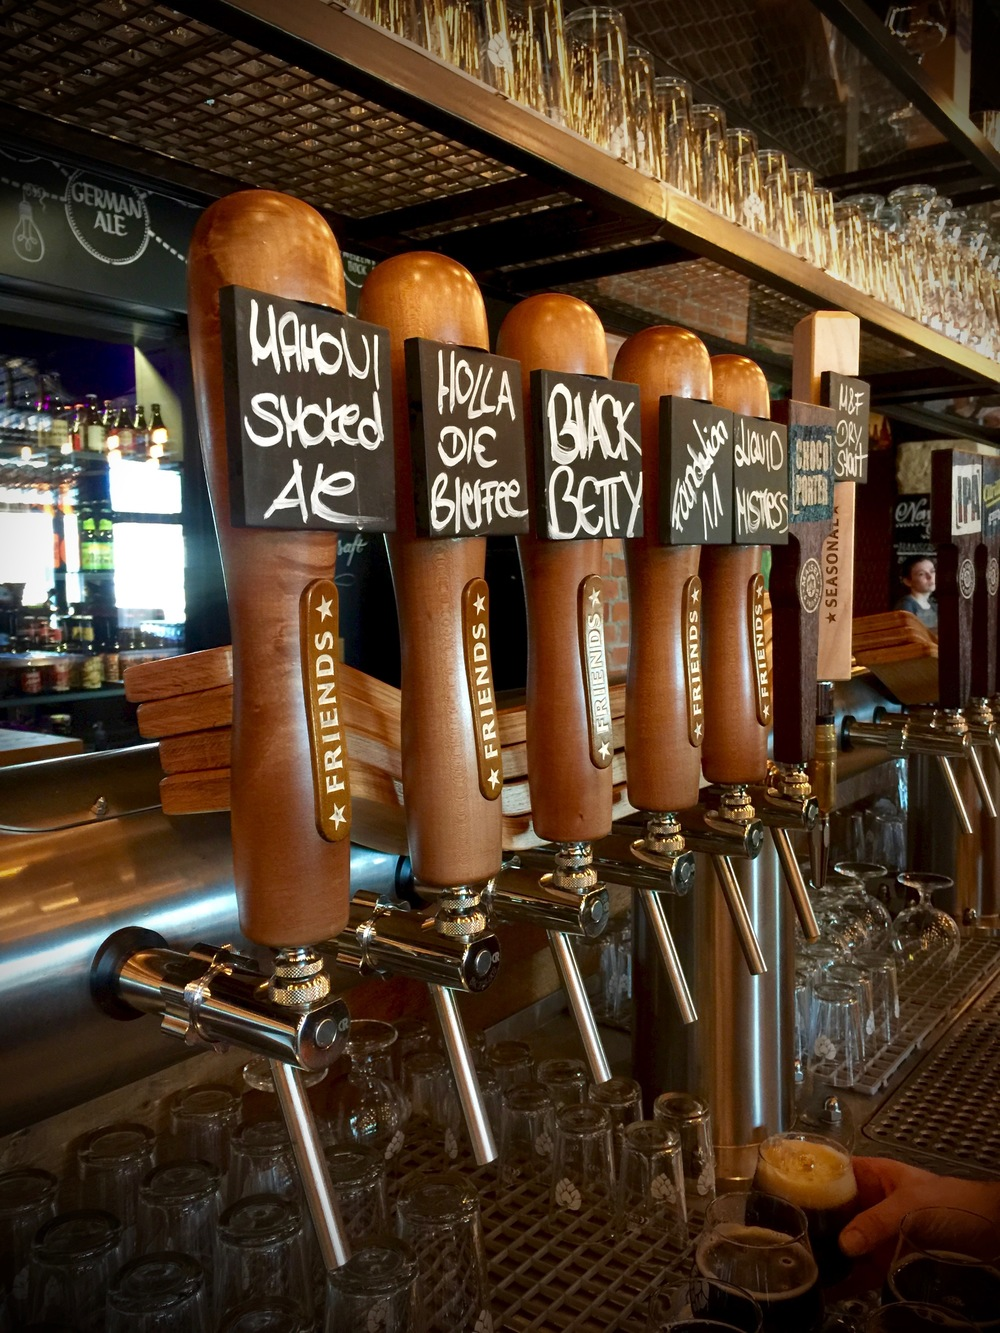 GER_Bayreuth_Friends Beer Taps.jpg